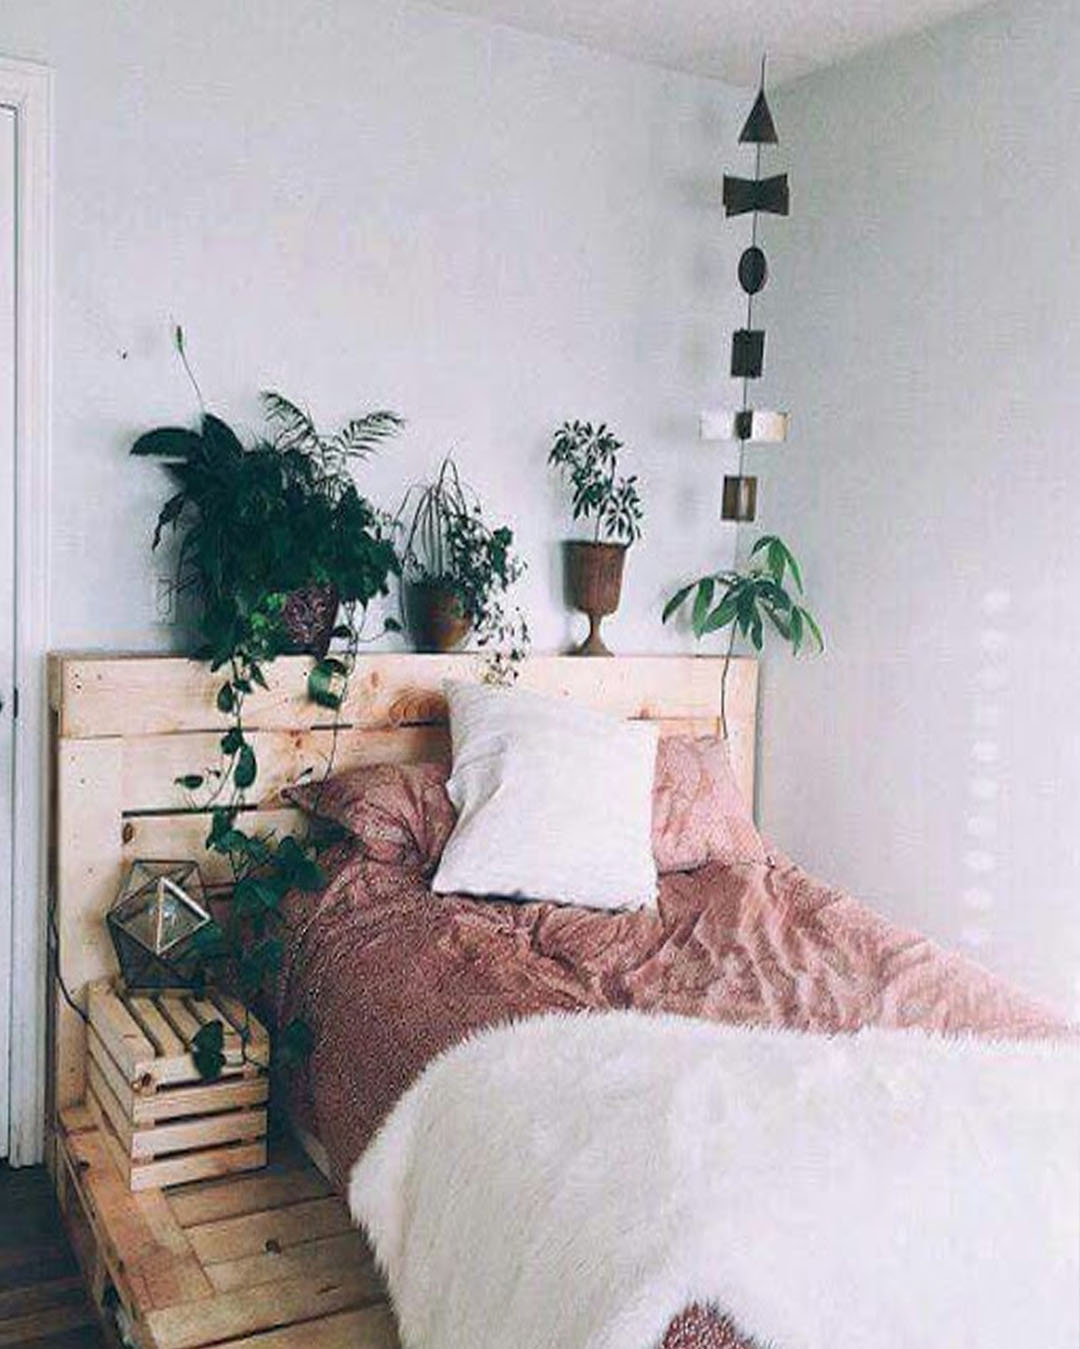 Decor Of Room Style Original Tumblr Girlcheck